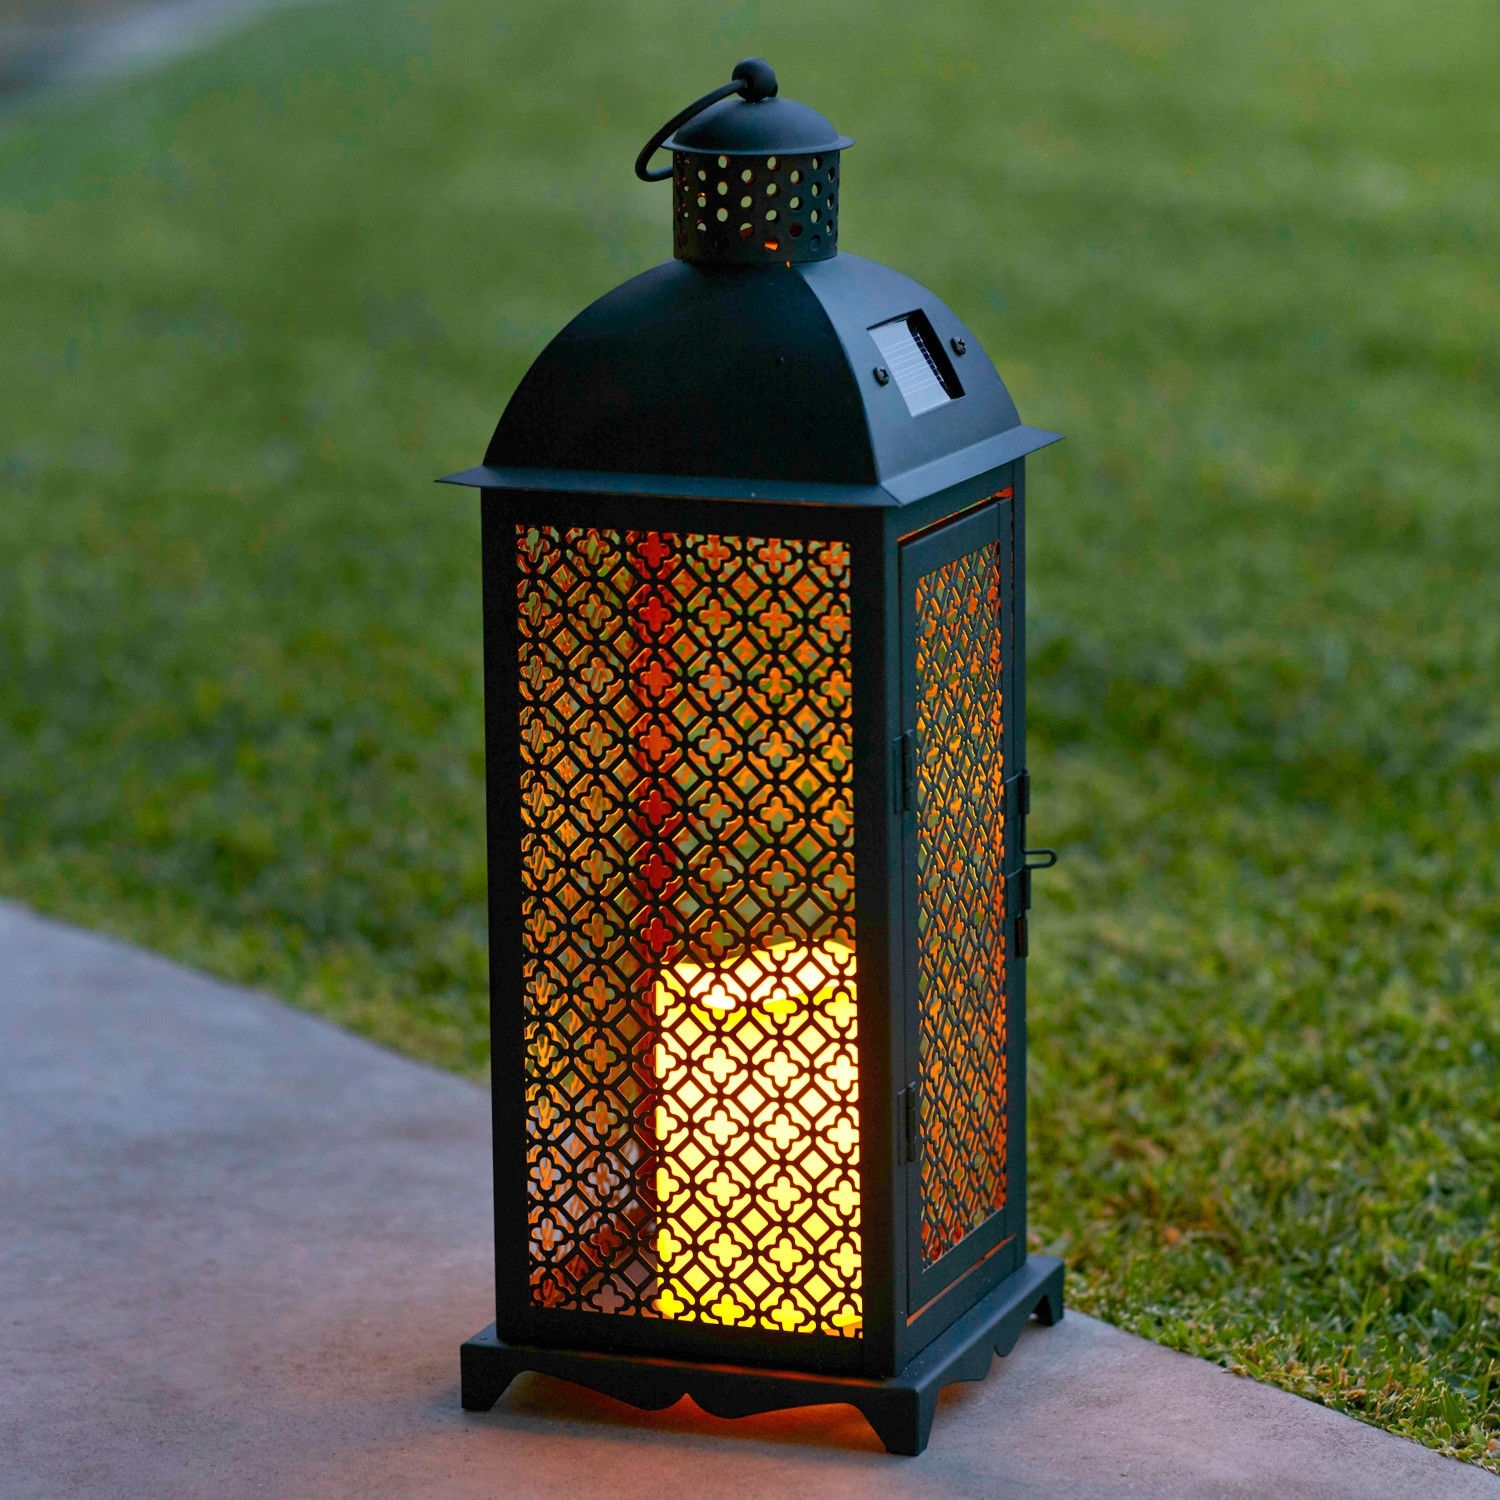 Moroccan Solar Powered Led Garden Outdoor Flameless Candle Lantern with regard to Outdoor Lanterns With Led Candles (Image 13 of 20)